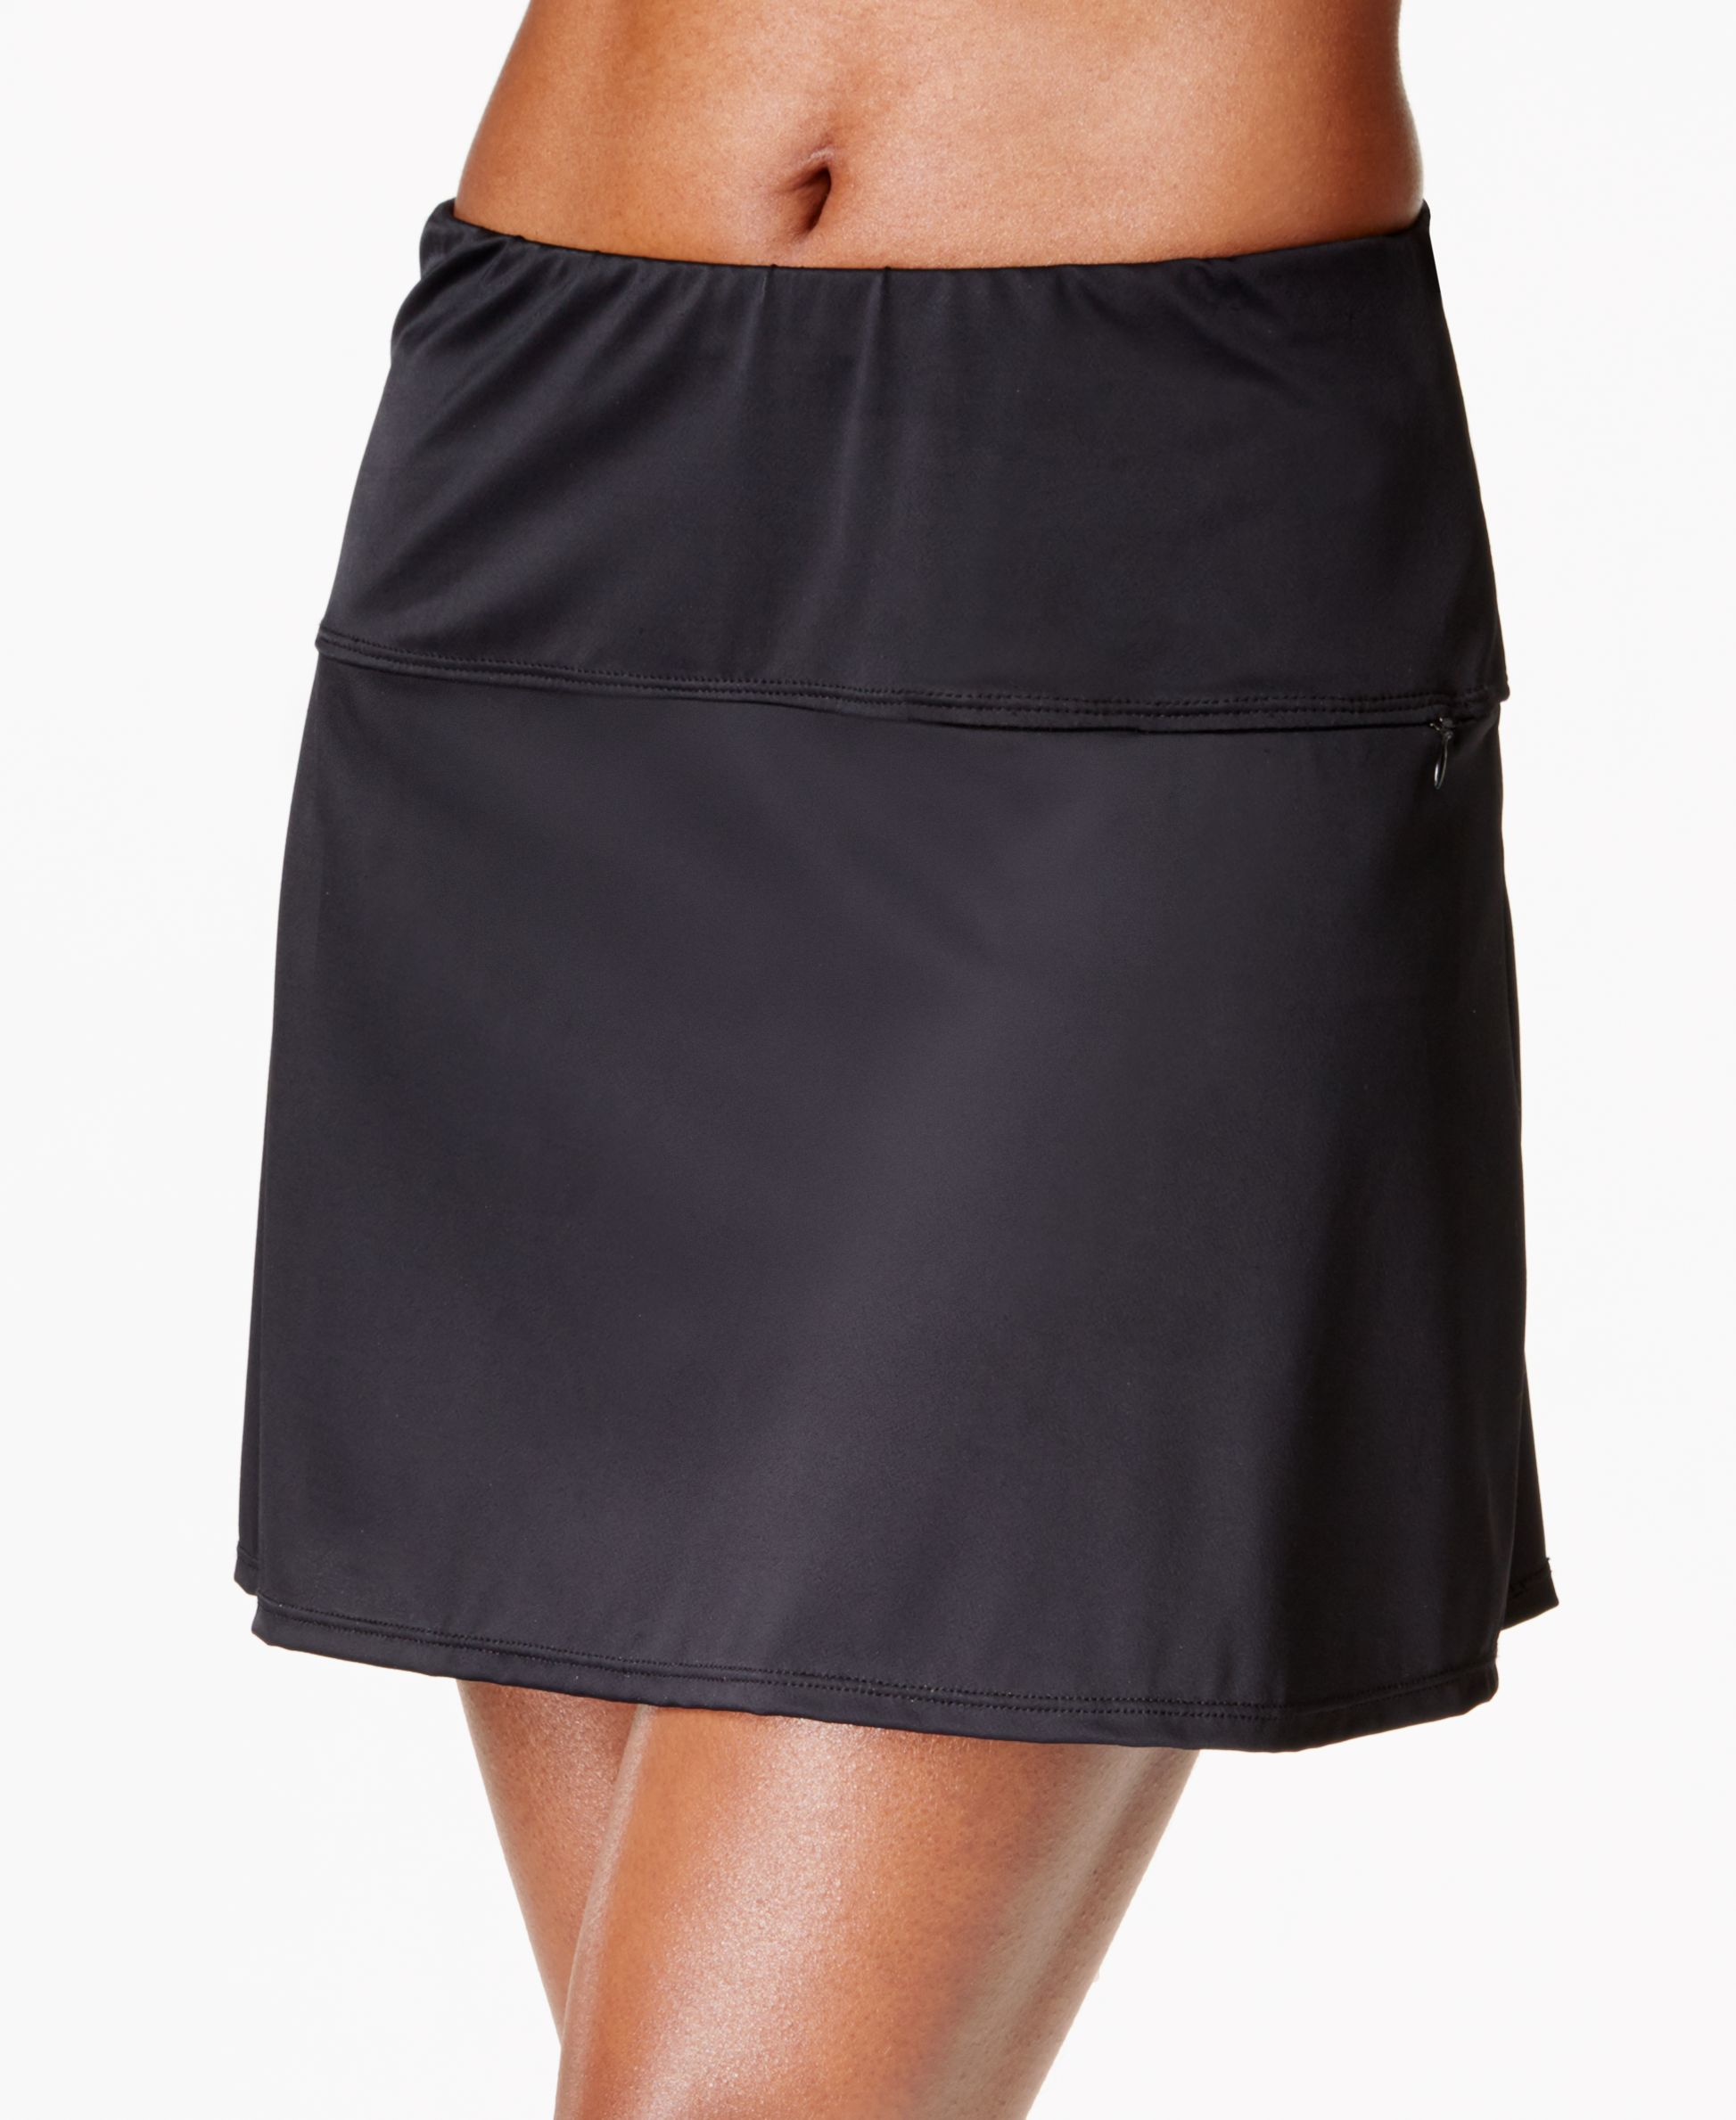 Swim Skirts. Need to update your swimsuit style? Ease into the season with swim skirts and coordinating tops. Just the Right Amount of Coverage Skirts and tankini tops provide more coverage than a bikini with the same great freedom of movement and comfort. Choose from a variety of skirt styles, from snug to loose and ruffled.